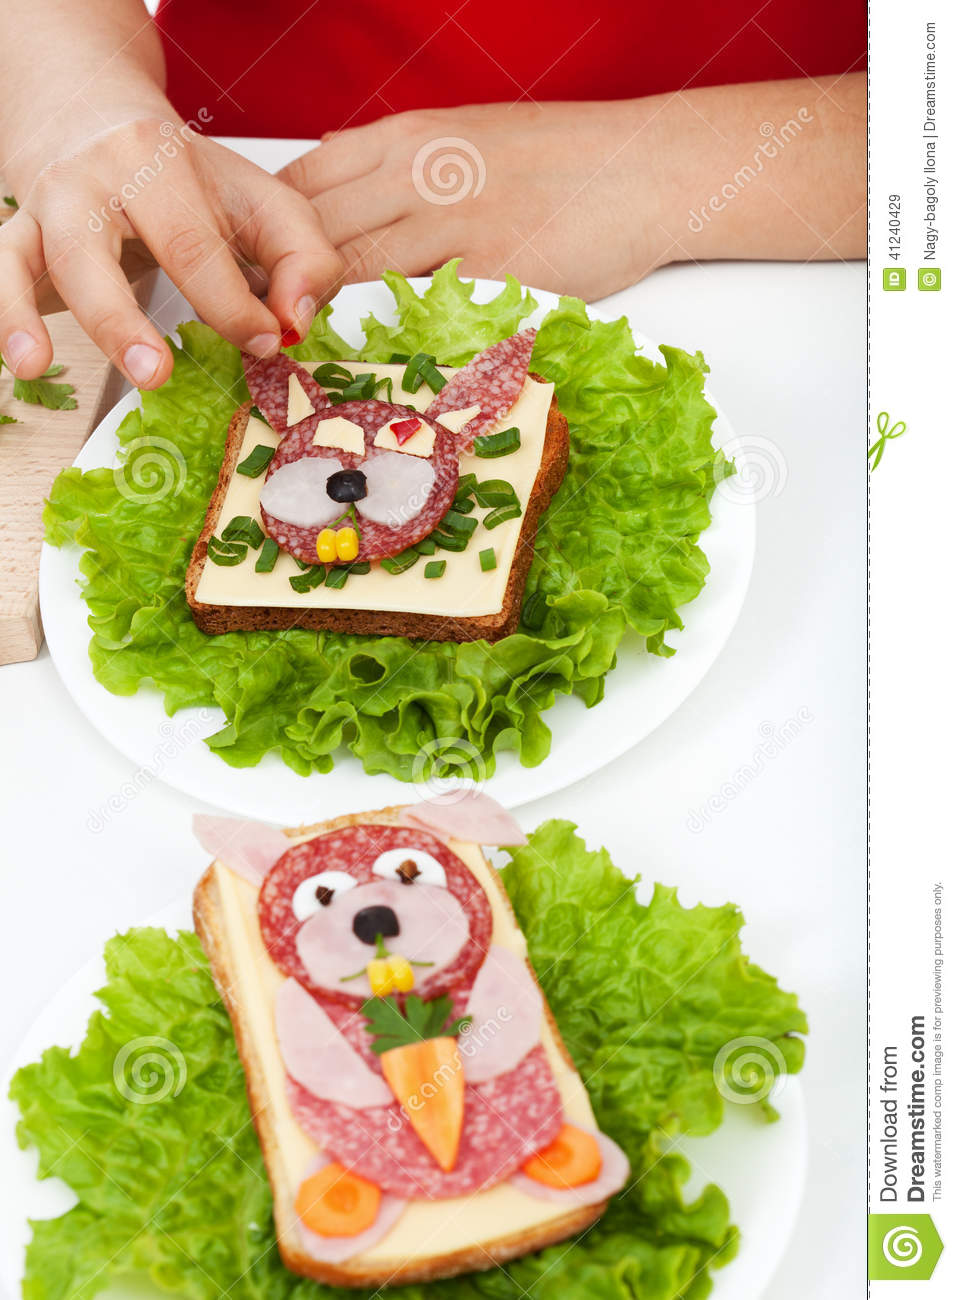 Creative food creature sandwiches decoration stock photo image 41240429 - Deco snack ...